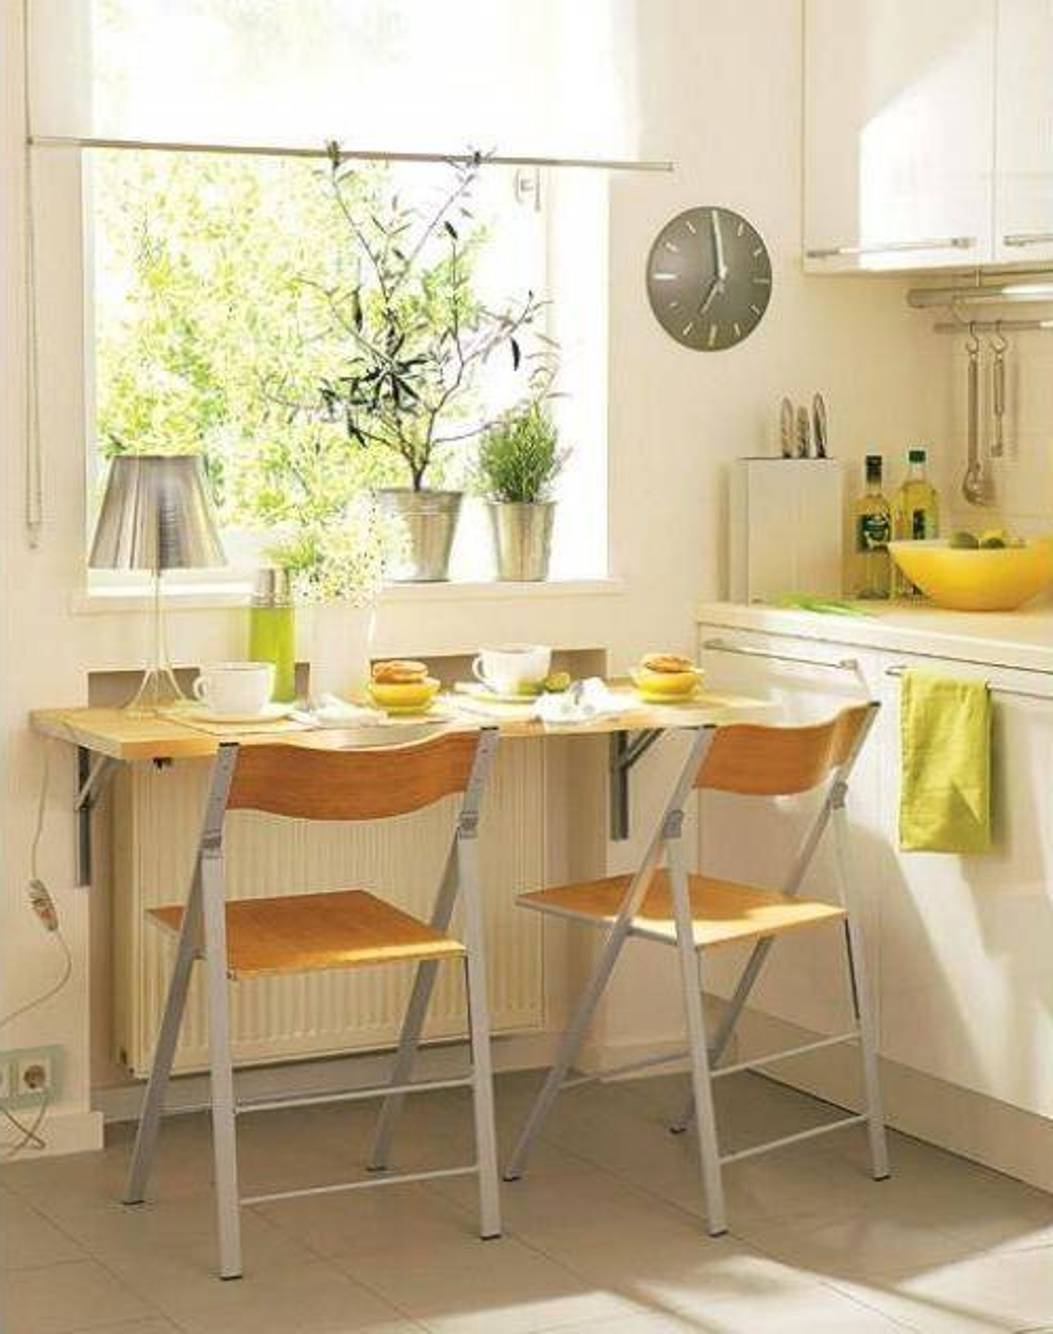 mount-small-kitchen-bar-table-decoration